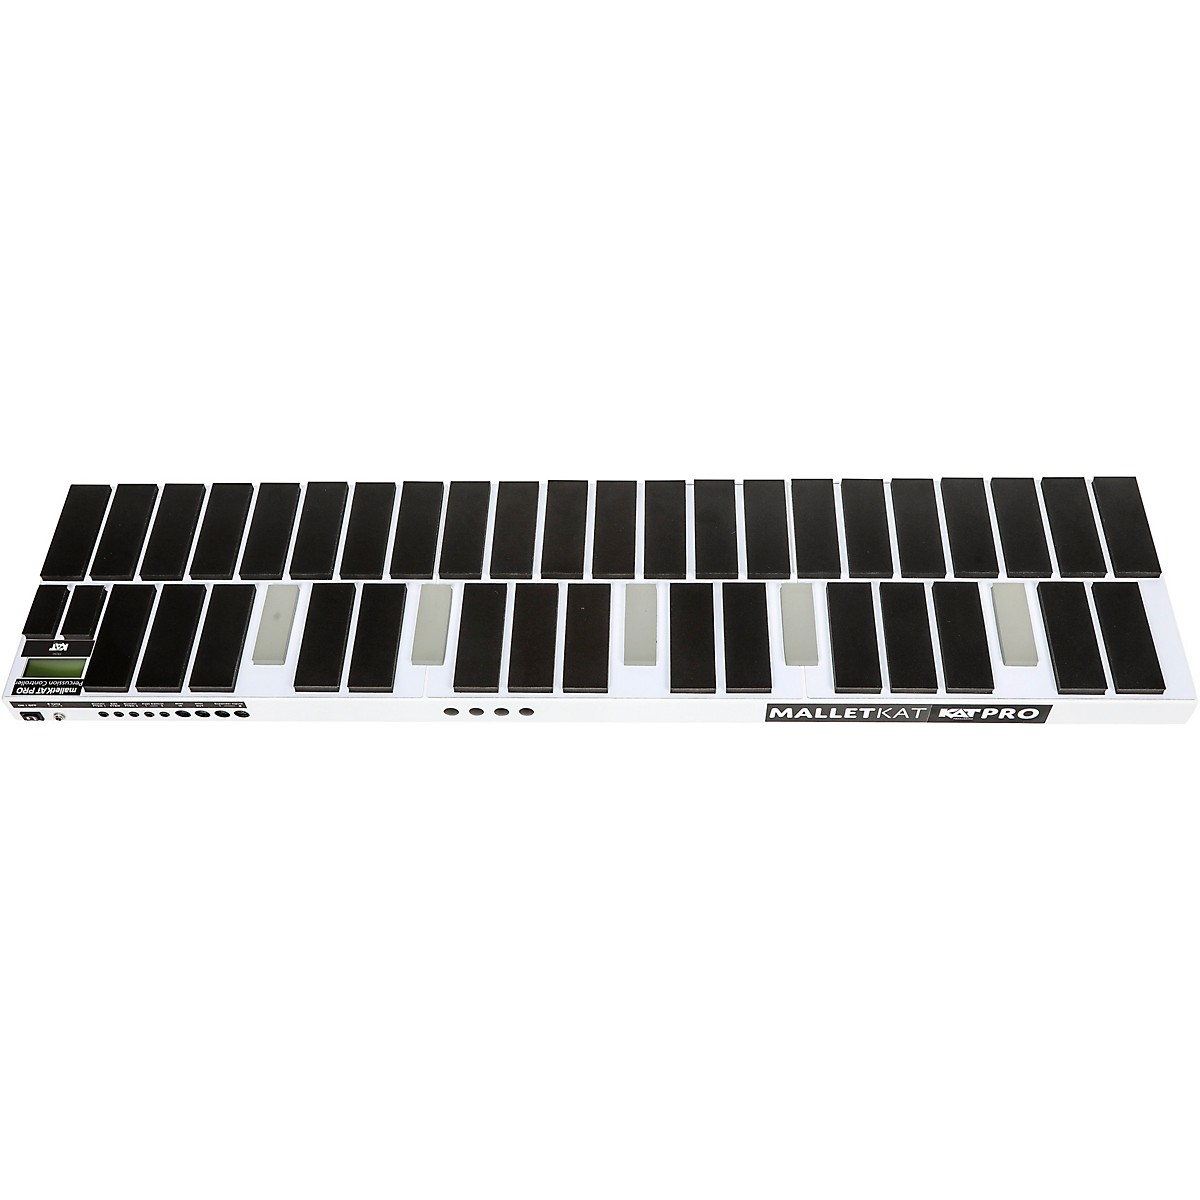 KAT Percussion MalletKAT 8.5 Pro 3-Octave Keyboard Percussion Controller with GigKAT 2 Module